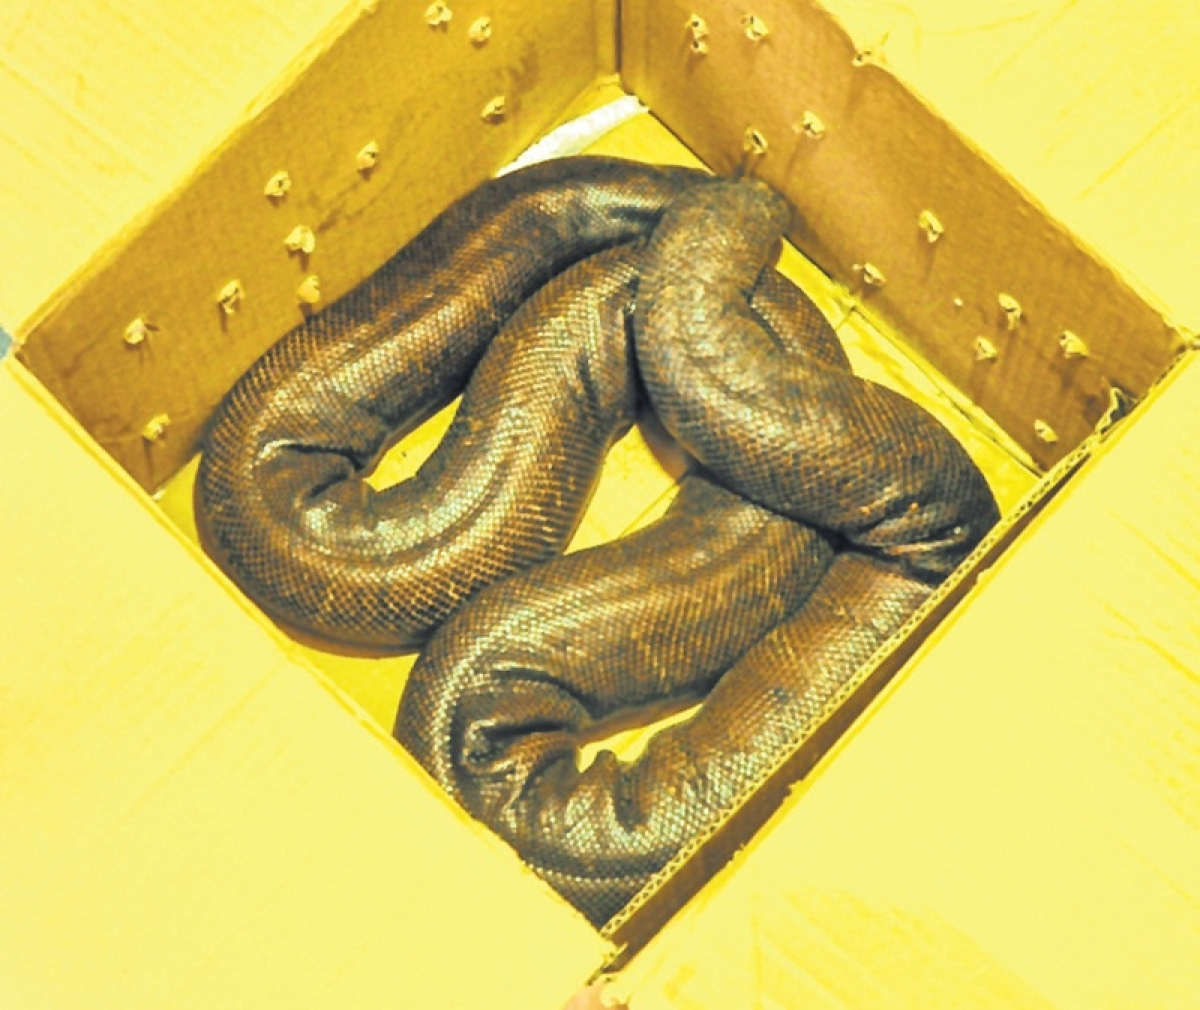 Indore: Endangered two-headed snake seized, one arrested